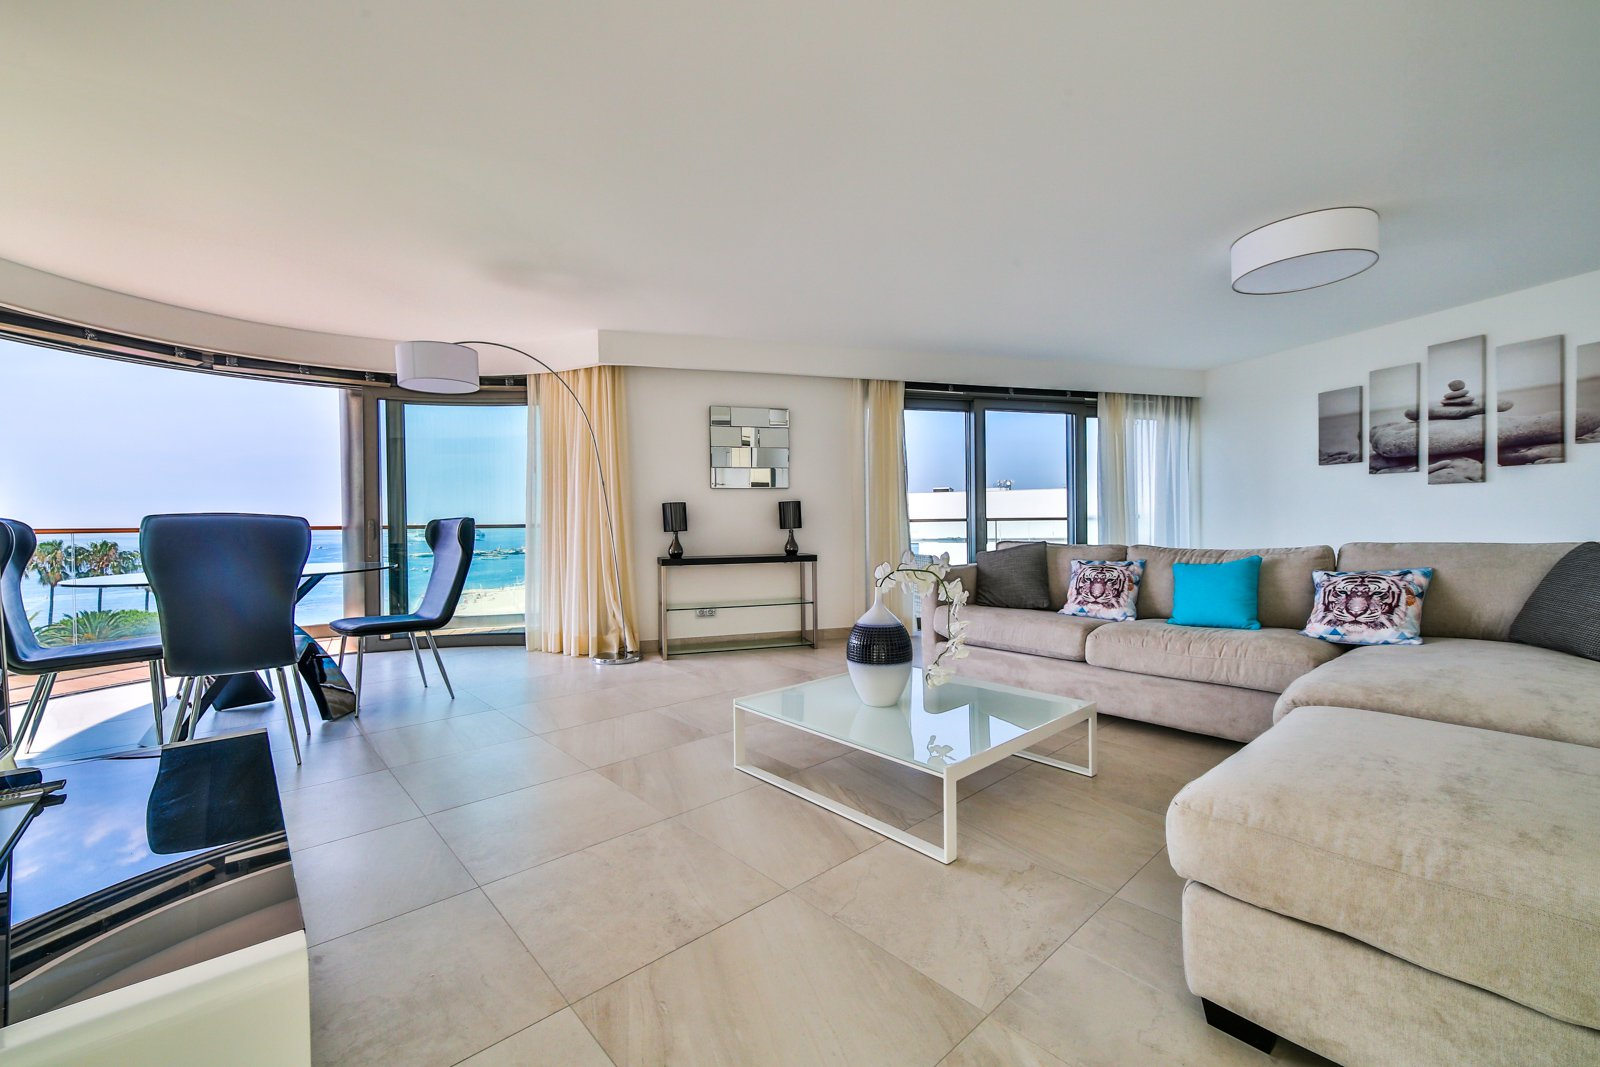 Seasonal rental Apartment - Cannes 7 Croisette - N°701